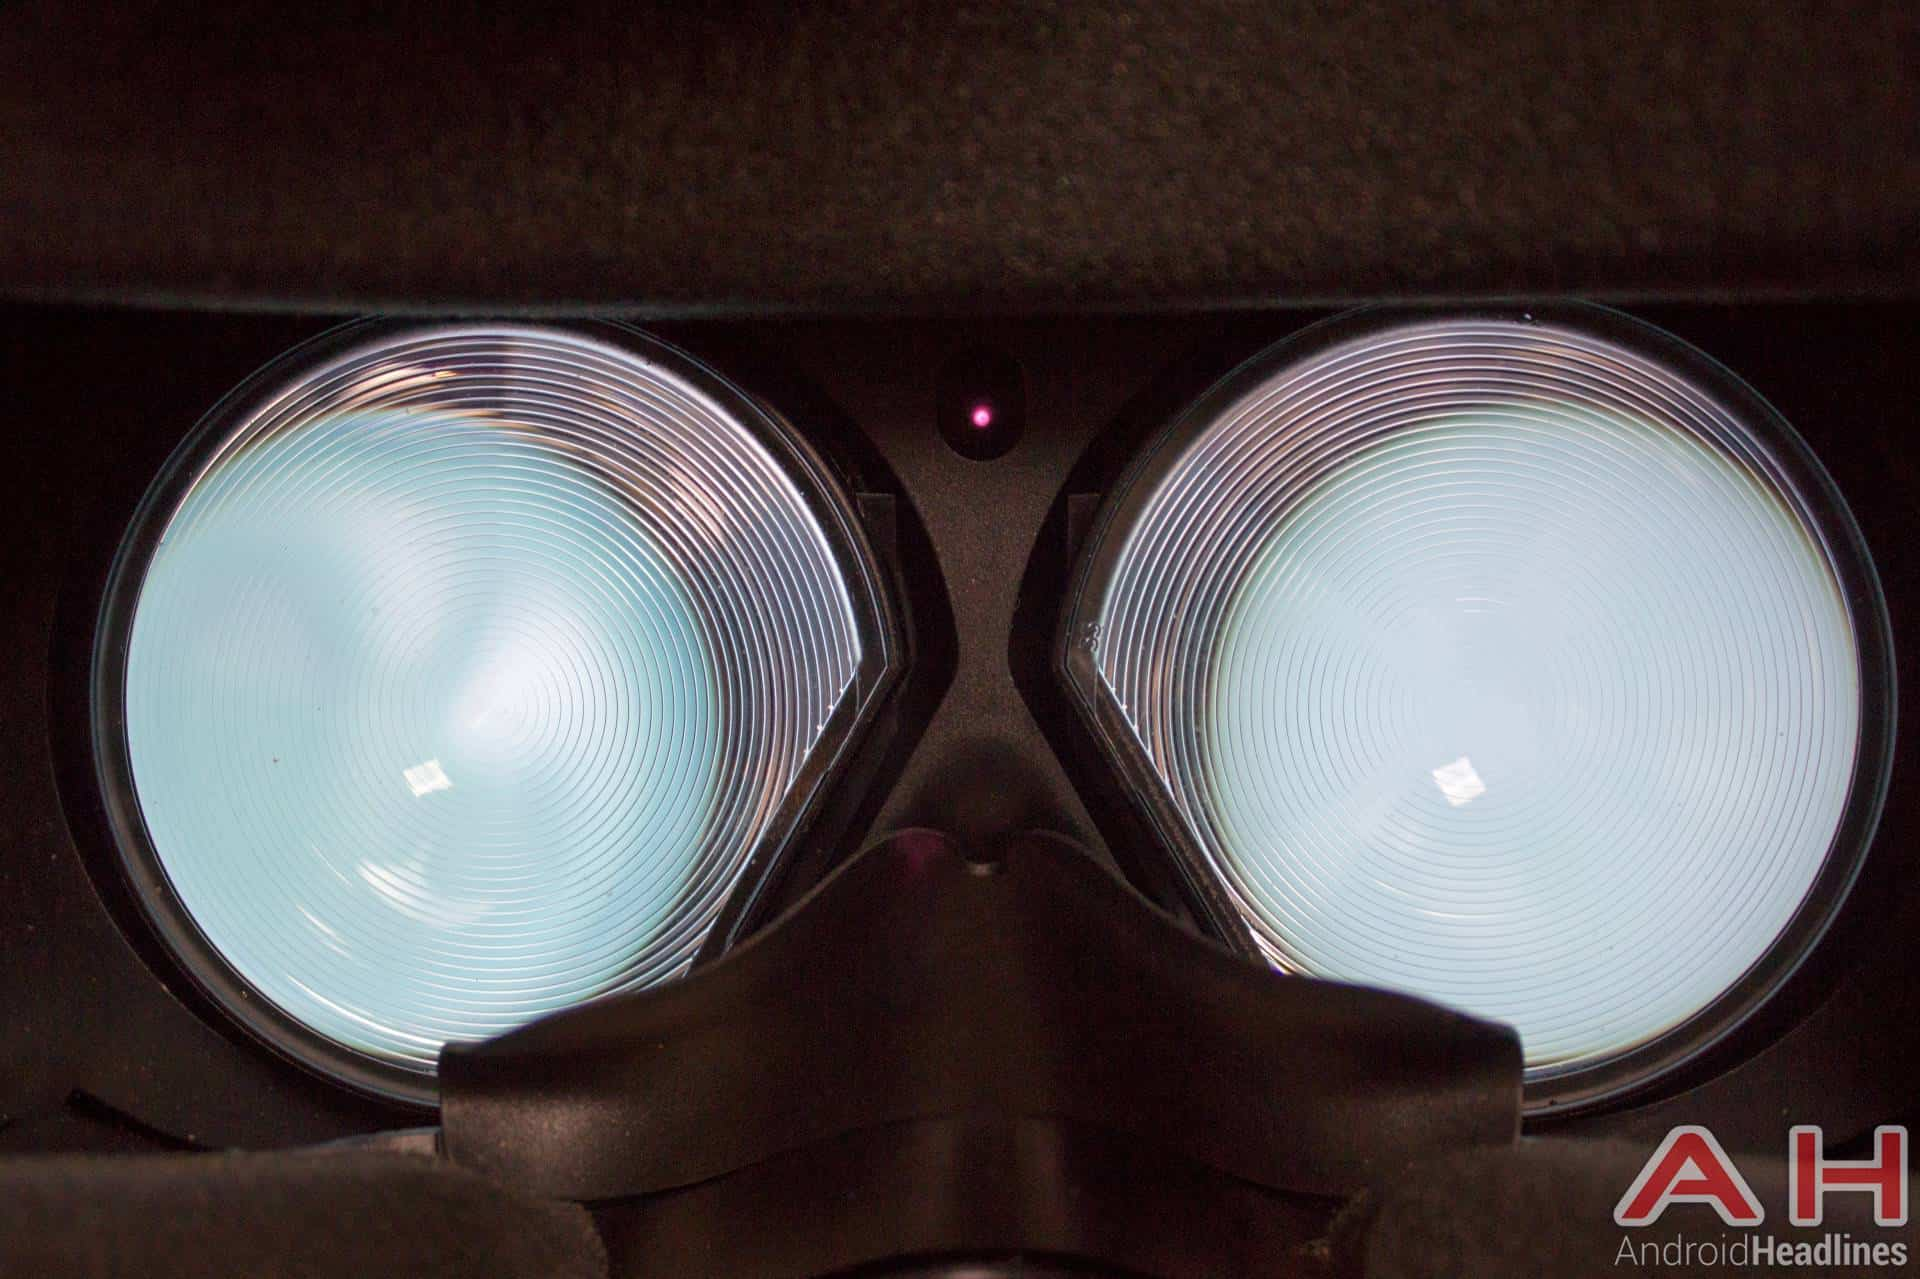 HTC-Vive-AH-NS-display-lens